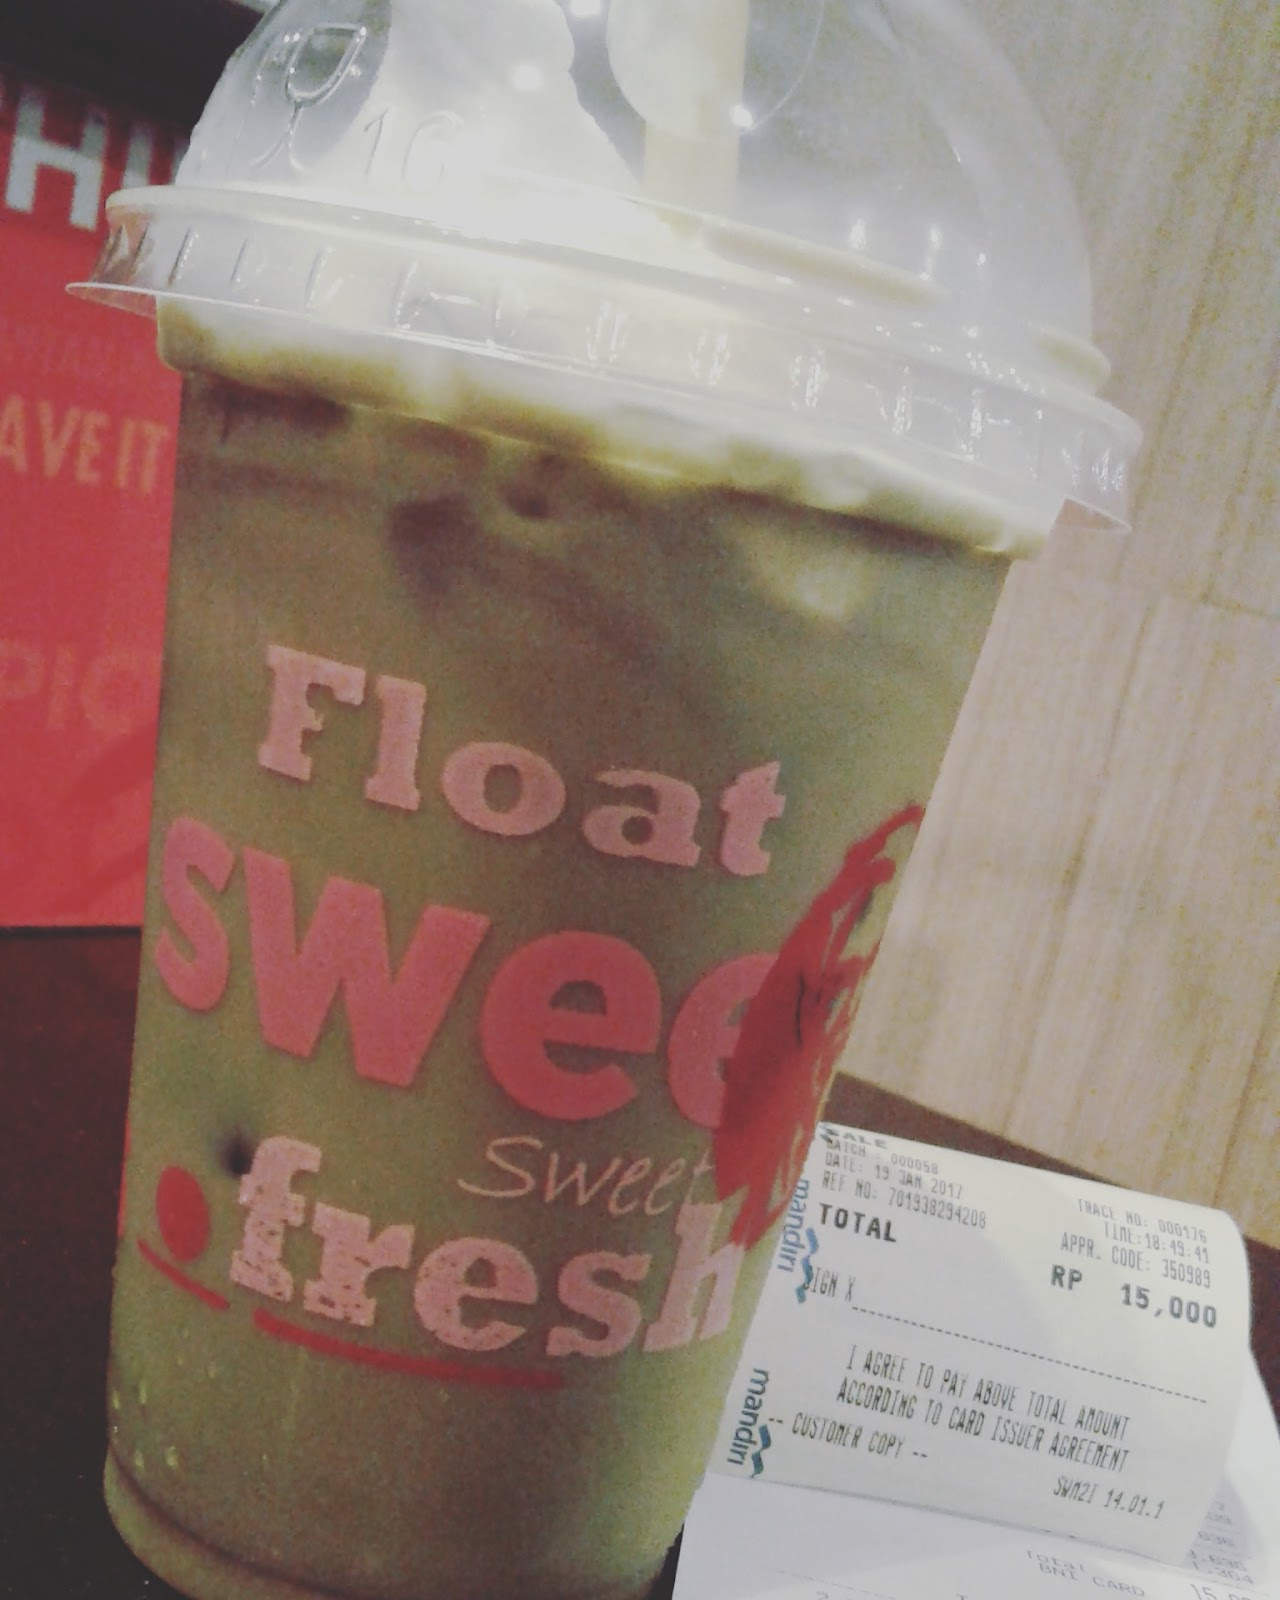 Harga Mocha Float Kfc : harga, mocha, float, Grafficip, Zero:, Chokocha, Float